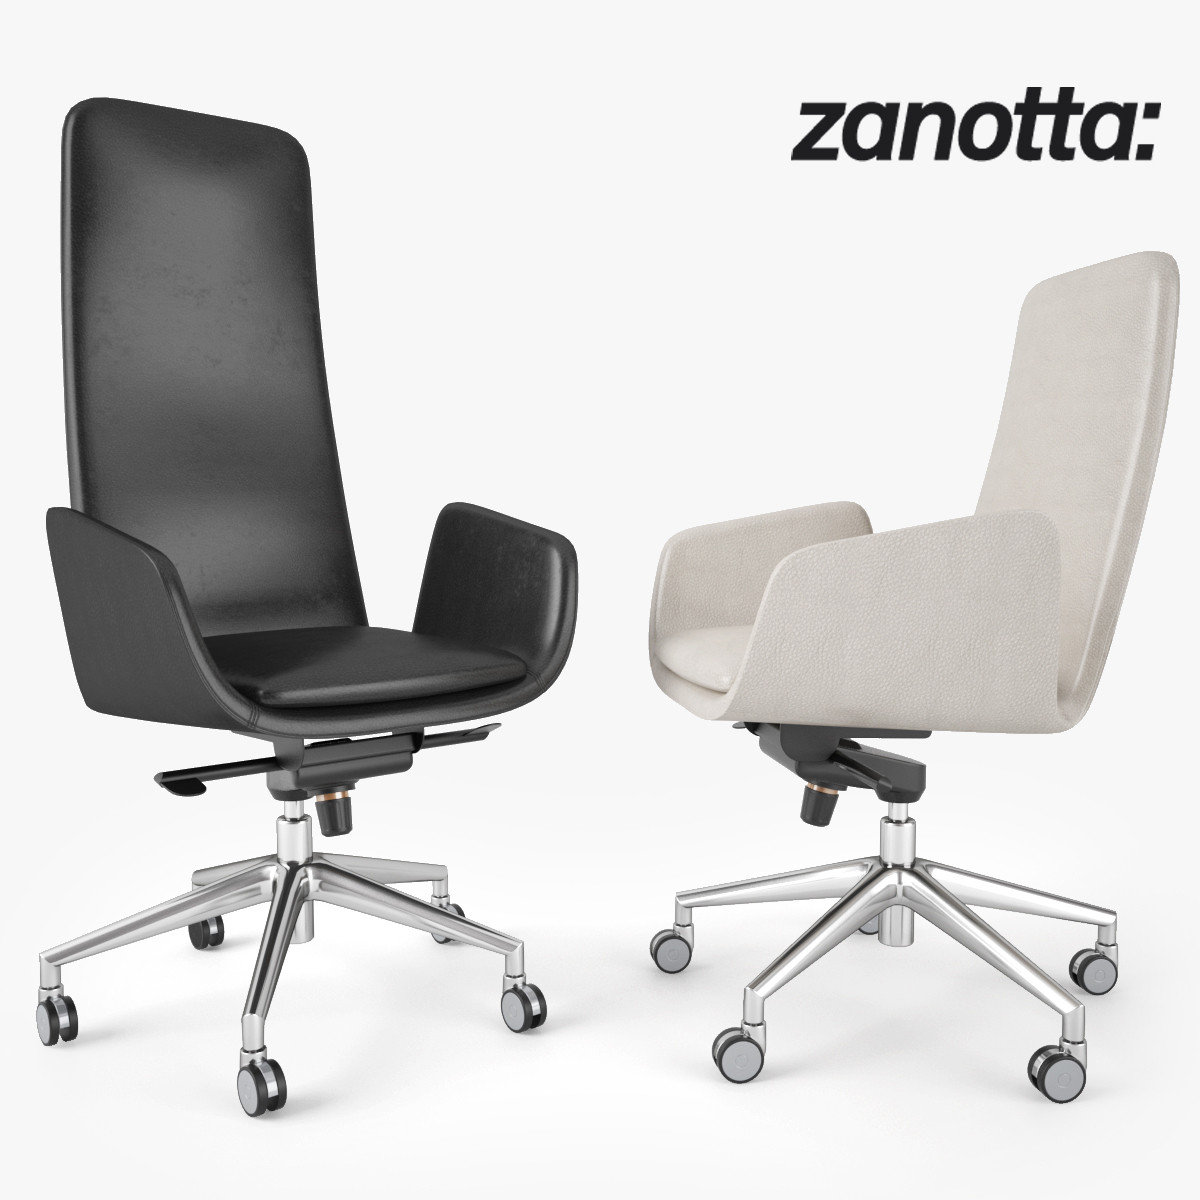 Zanotta Lord and Lady Chair 1.jpg